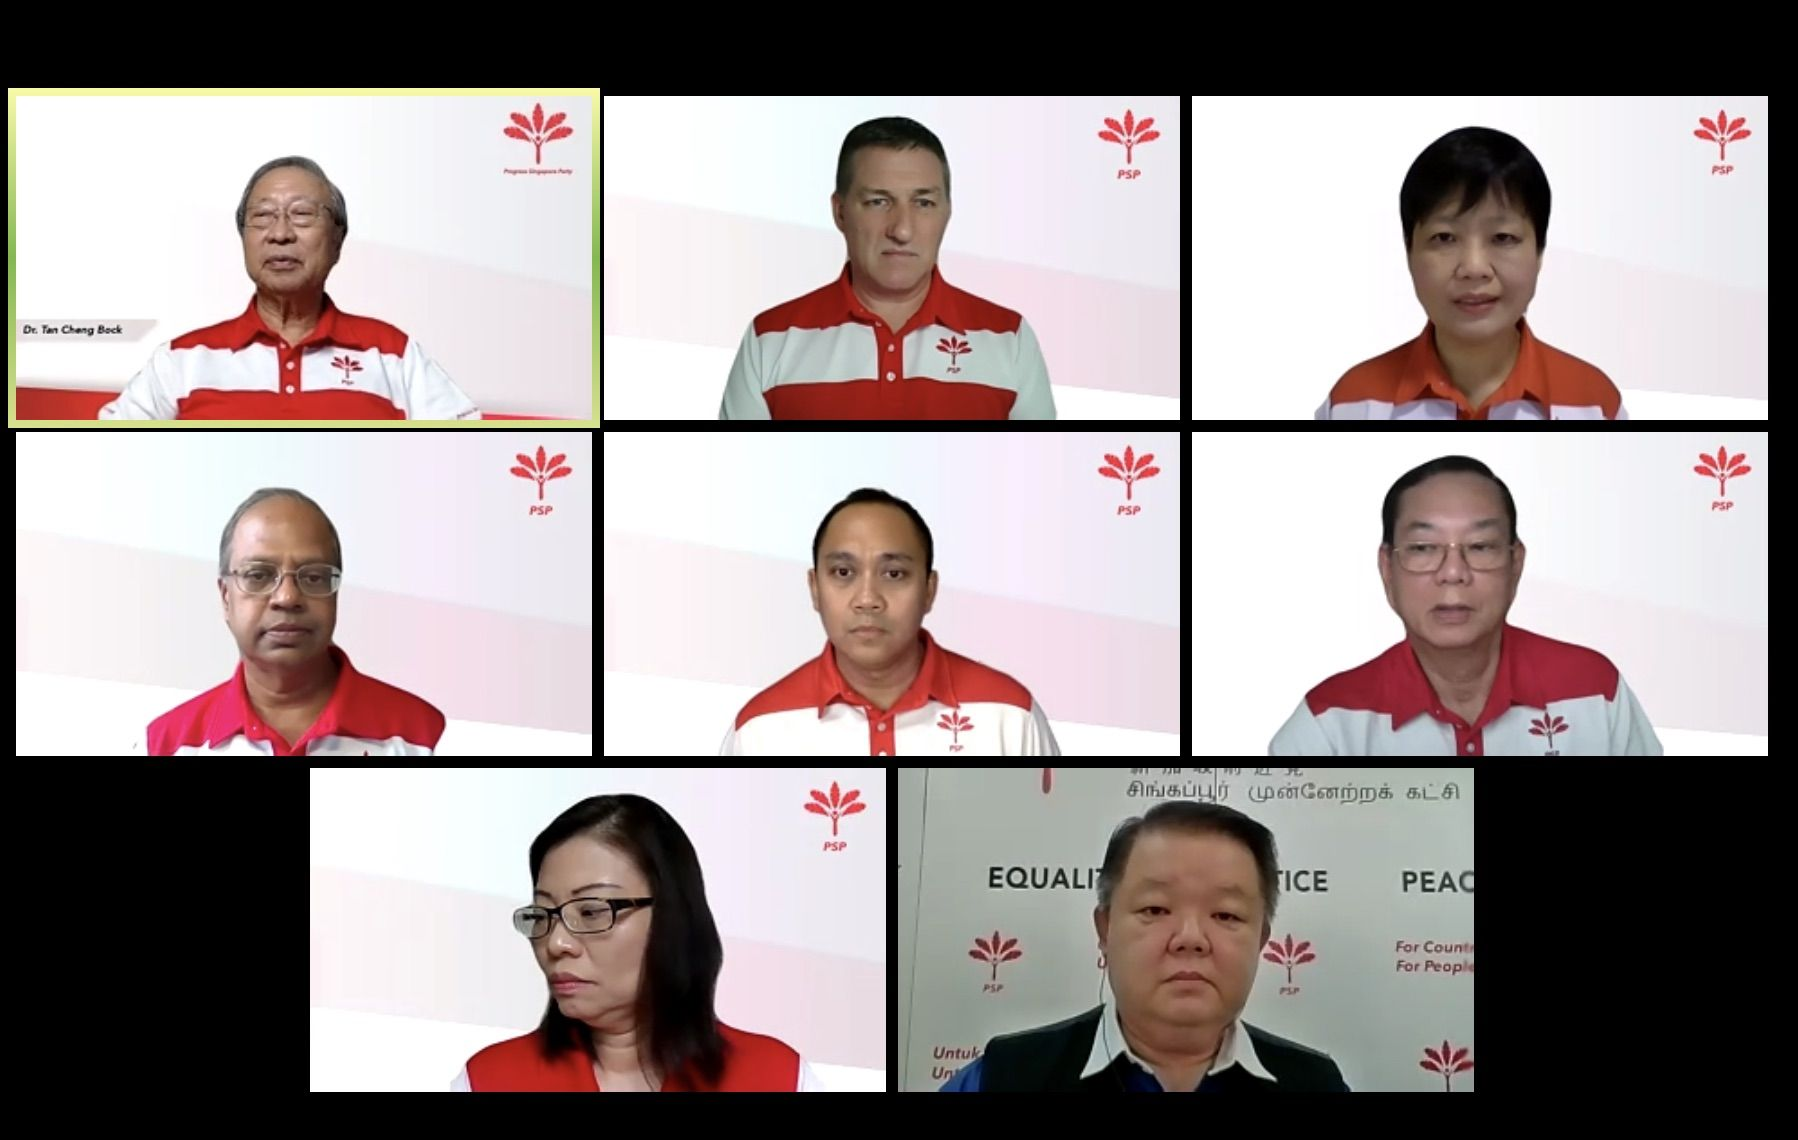 Progress Singapore Party introduces 6 candidates to contest in upcoming GE